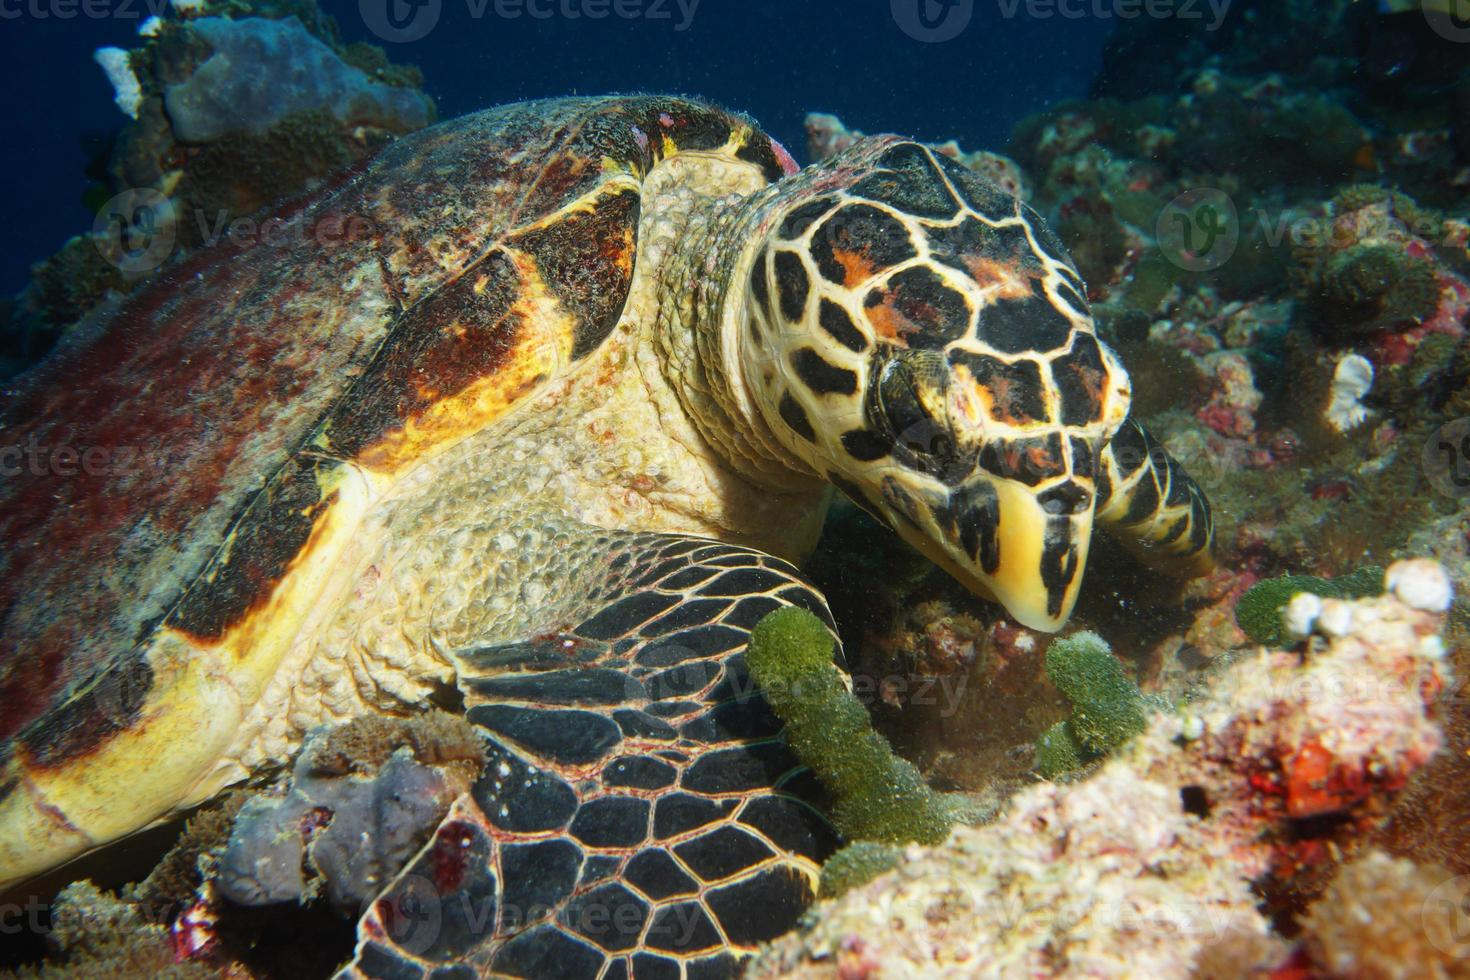 Hawksbill Turtle dines on algae on Maldives Reef photo